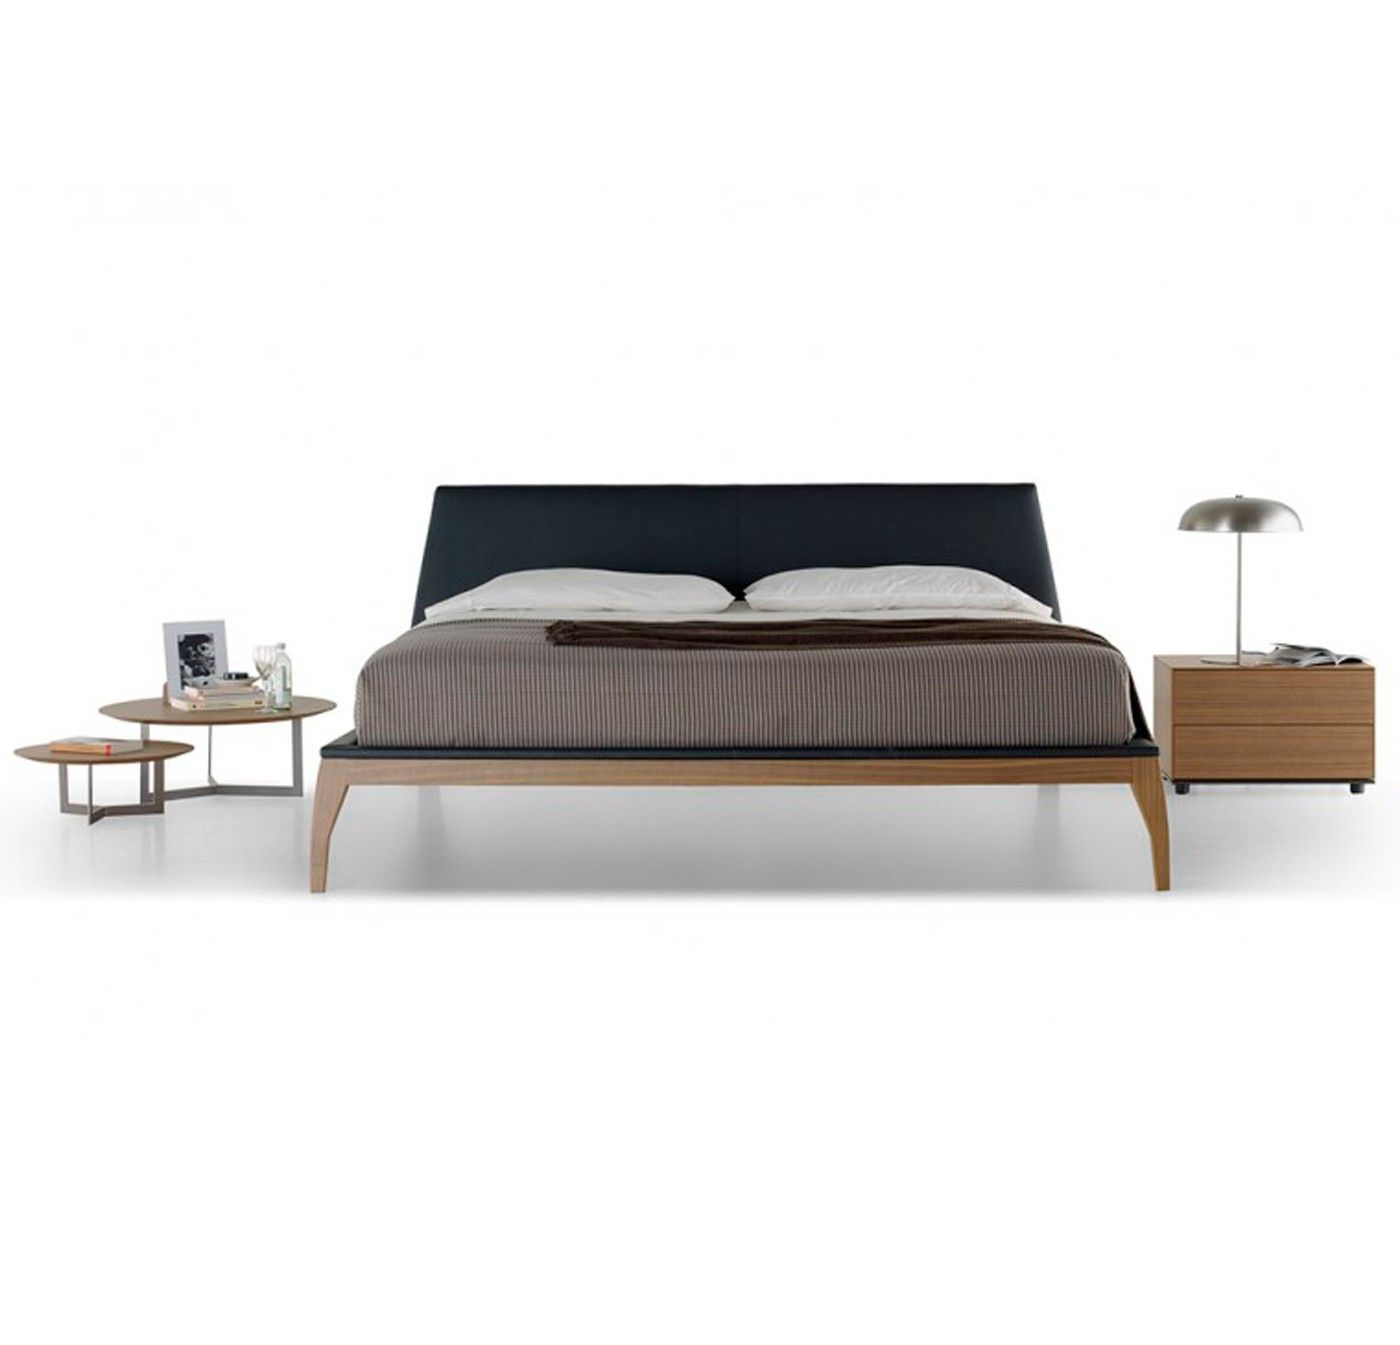 Pin by Glenda Lee on Bedroom Bed furniture, Contemporary bed